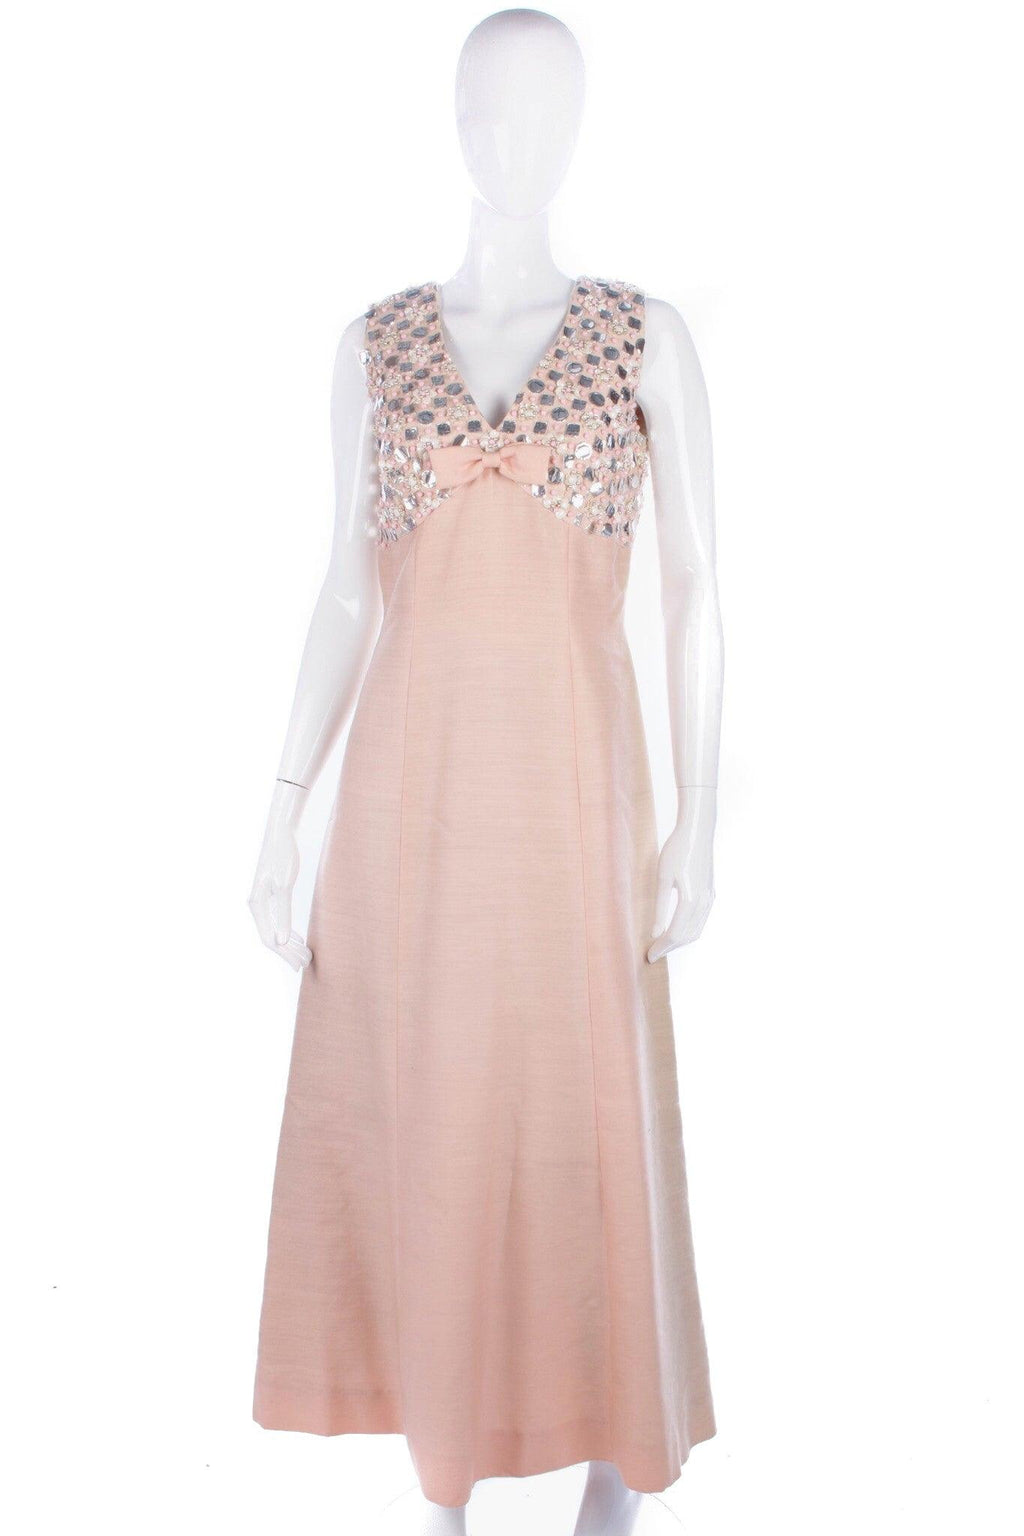 Ellis Vintage A Line Evening Gown Peach Pink with Sequins Size 8/10